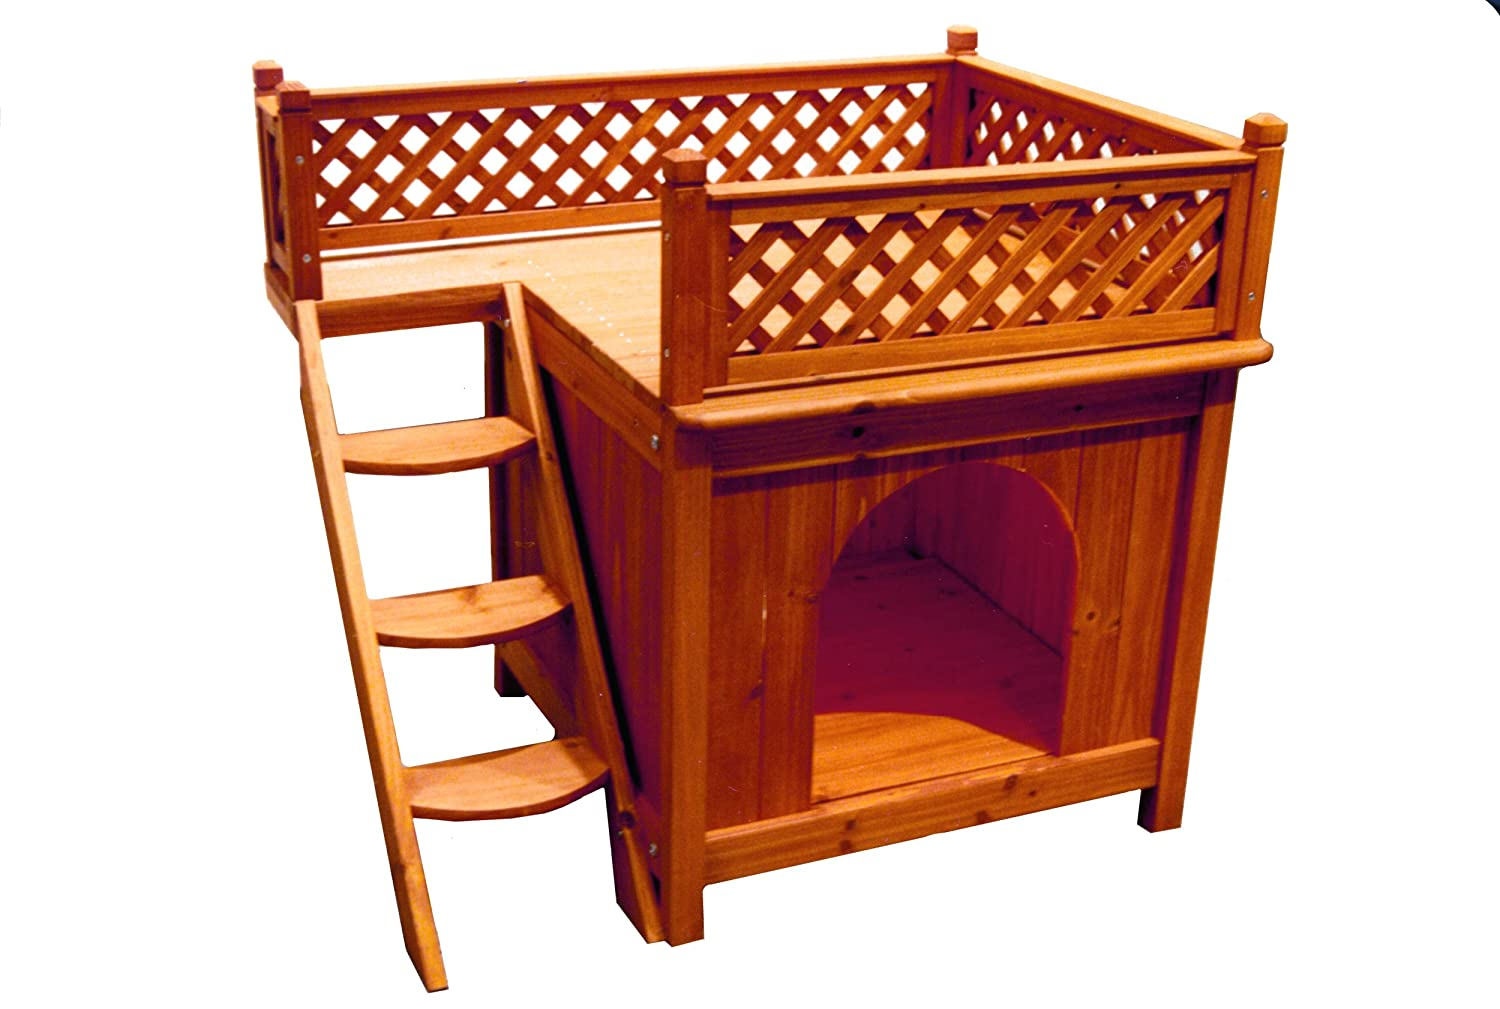 Raised Wood Dog Bed Plans